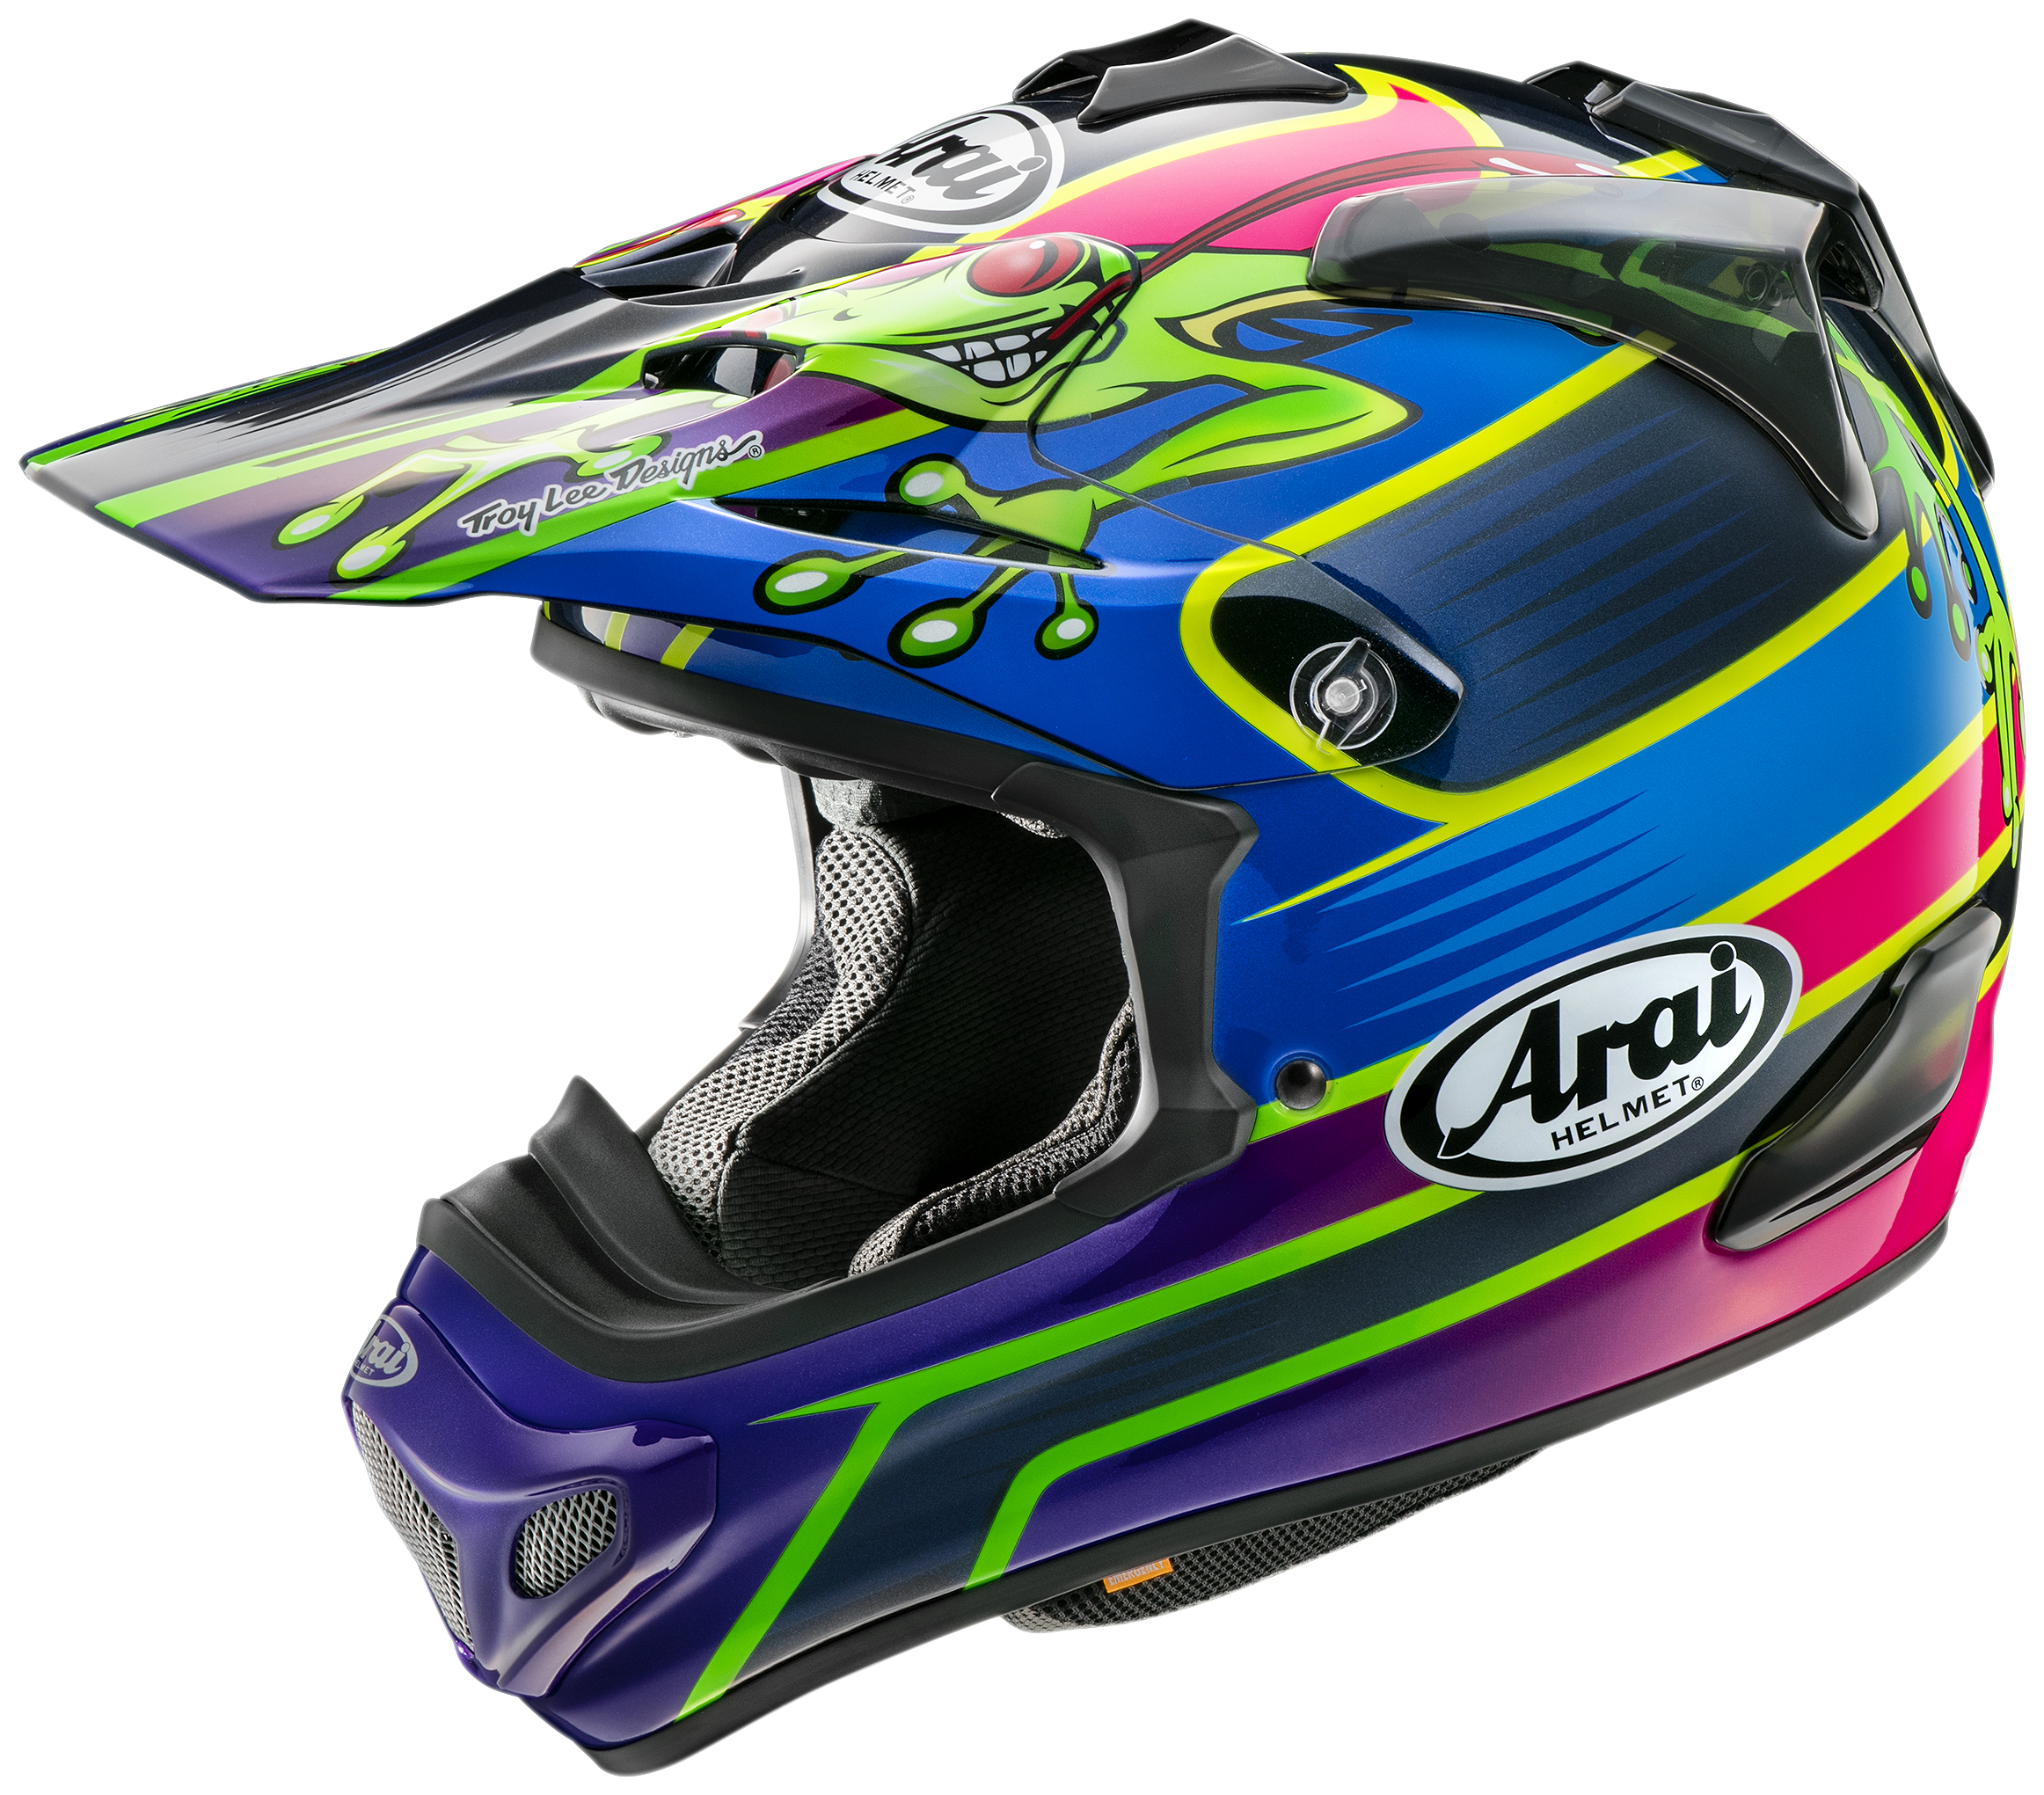 Barcia-3 Front